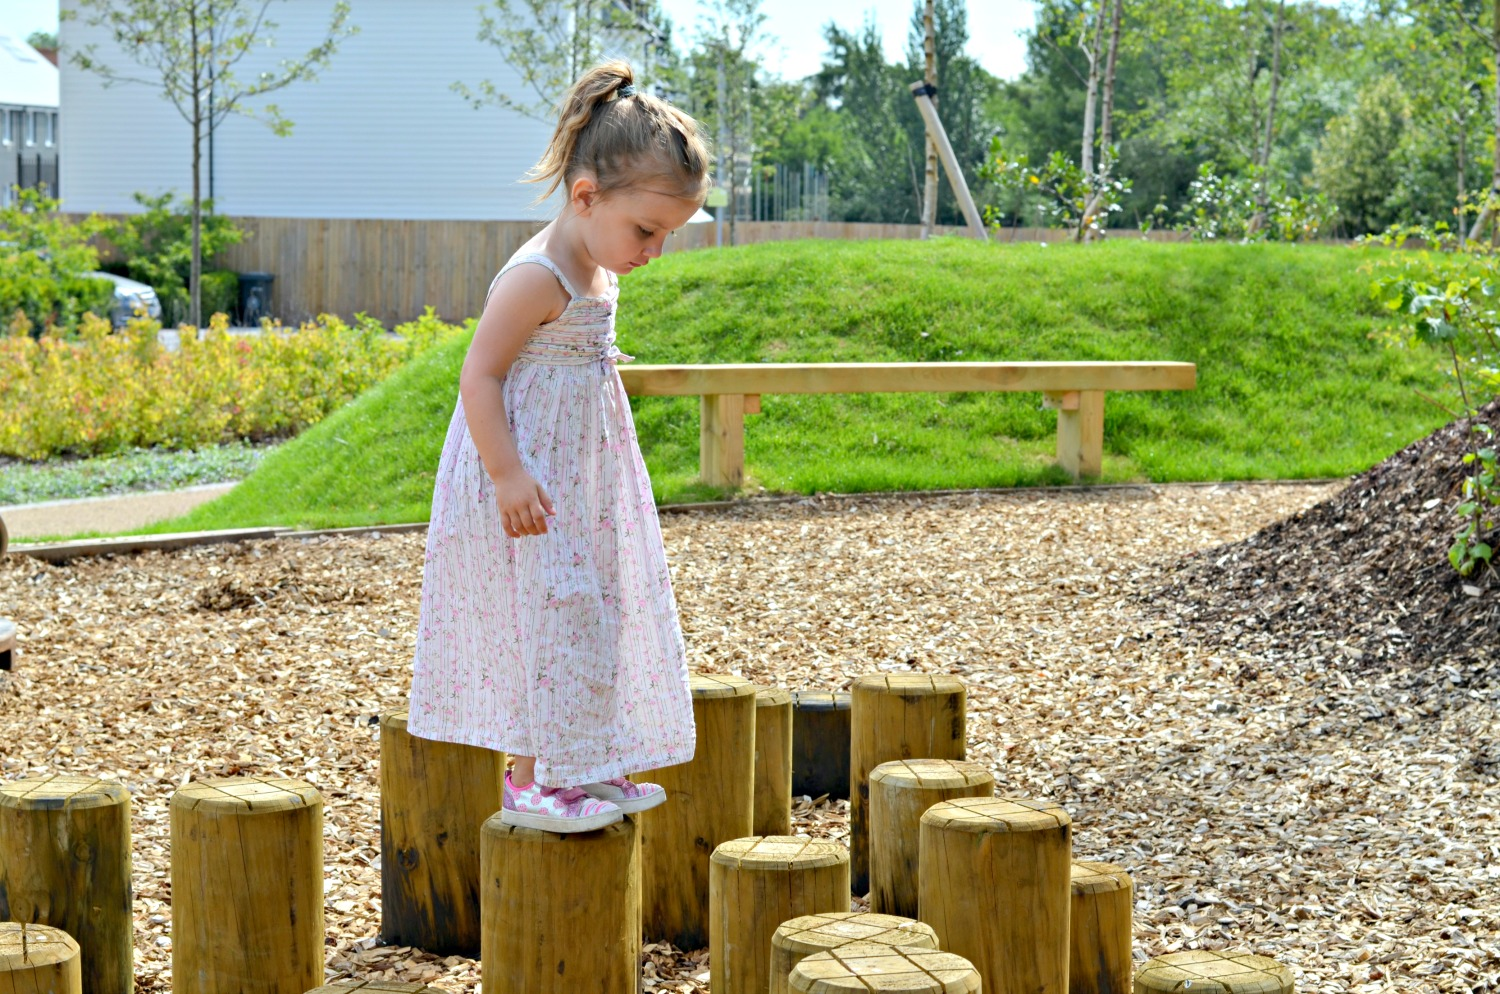 stepping stones, play, children, happy, adventure, family, parenting, summer dress, sun cream, walk